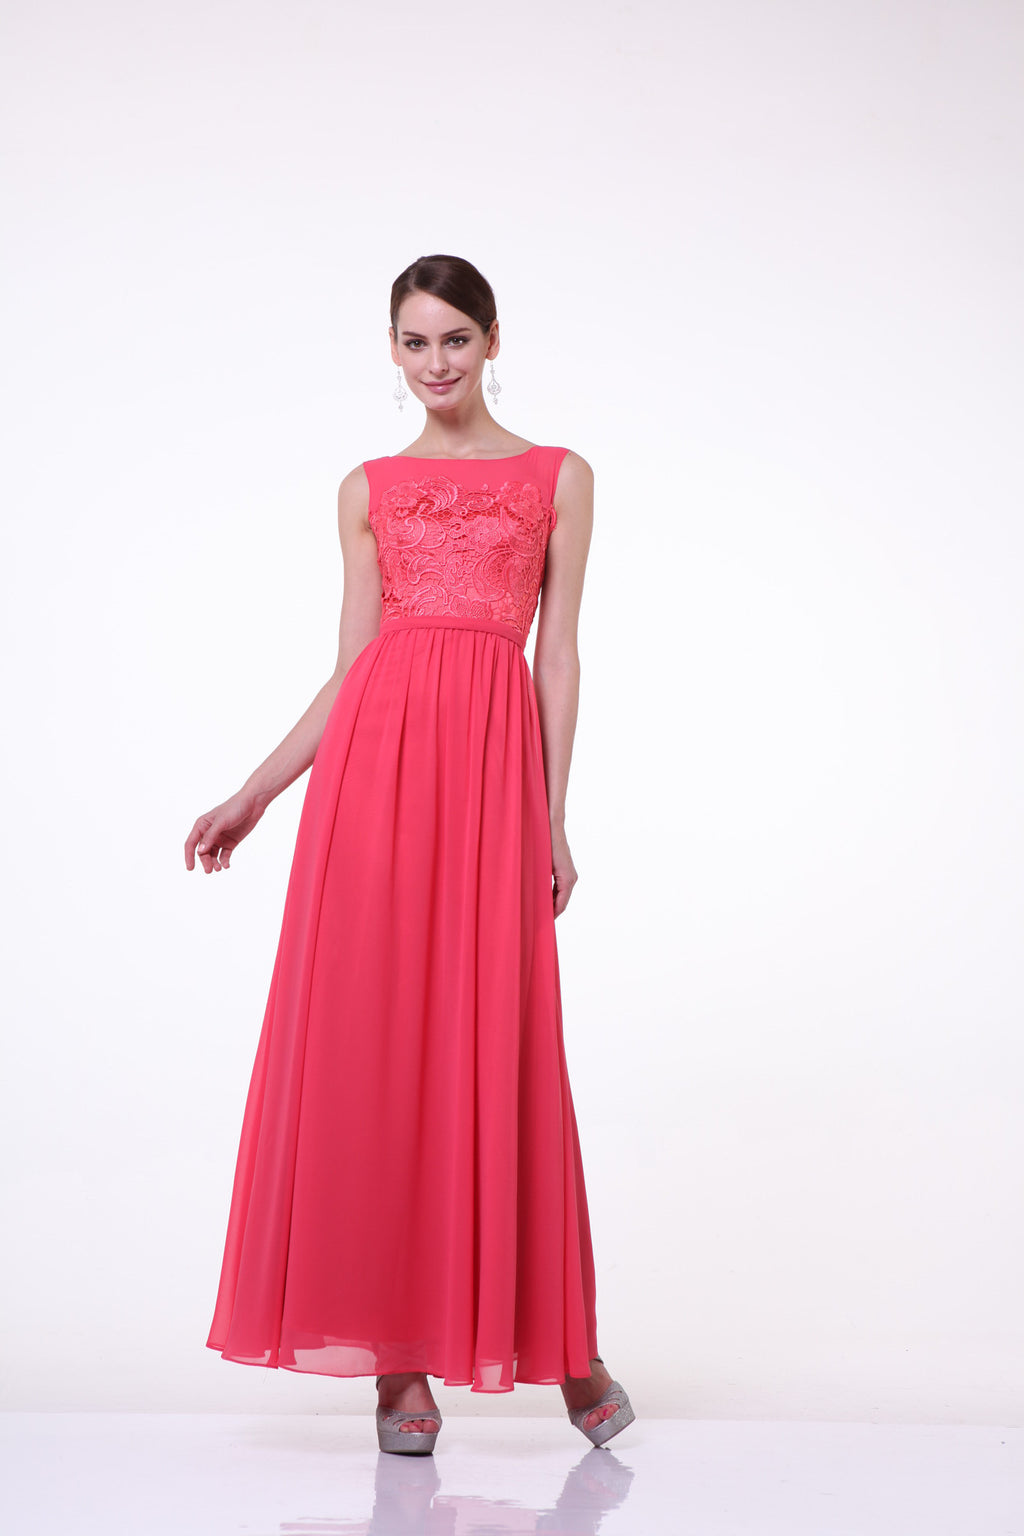 LONG DRESS STYLE #C1488 - NORMA REED - 1